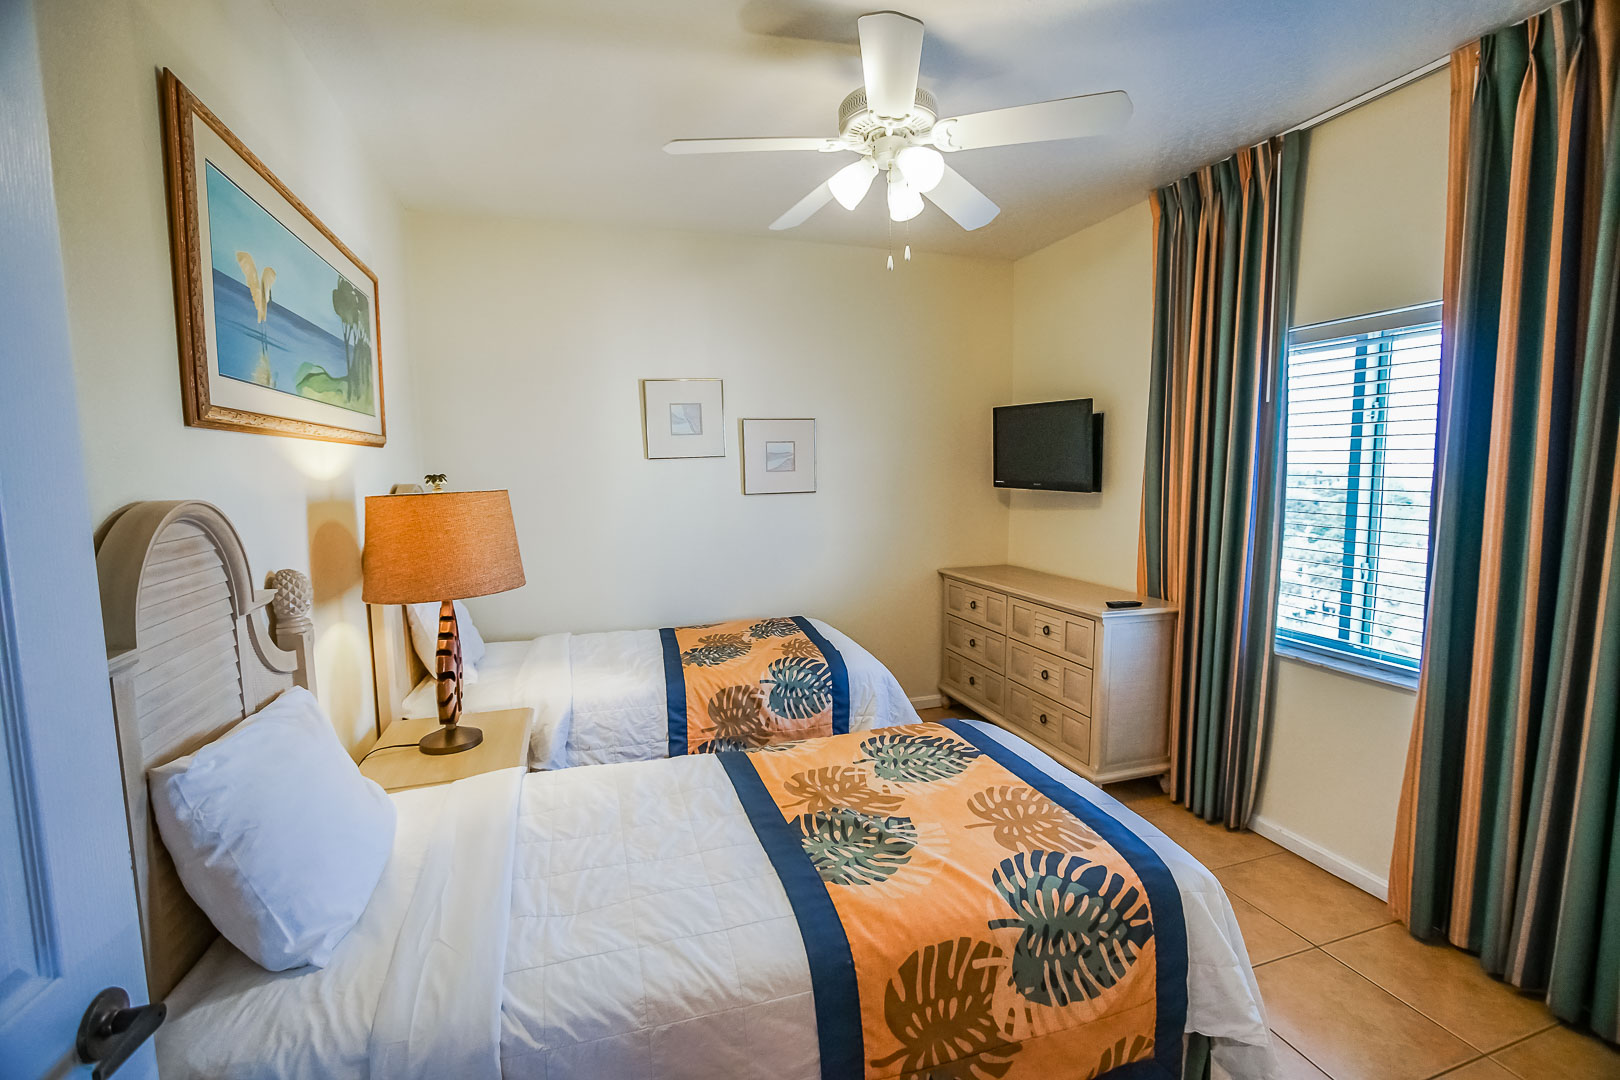 A bedroom with double beds at VRI's Discovery Beach Resort in Cocoa Beach, Florida.